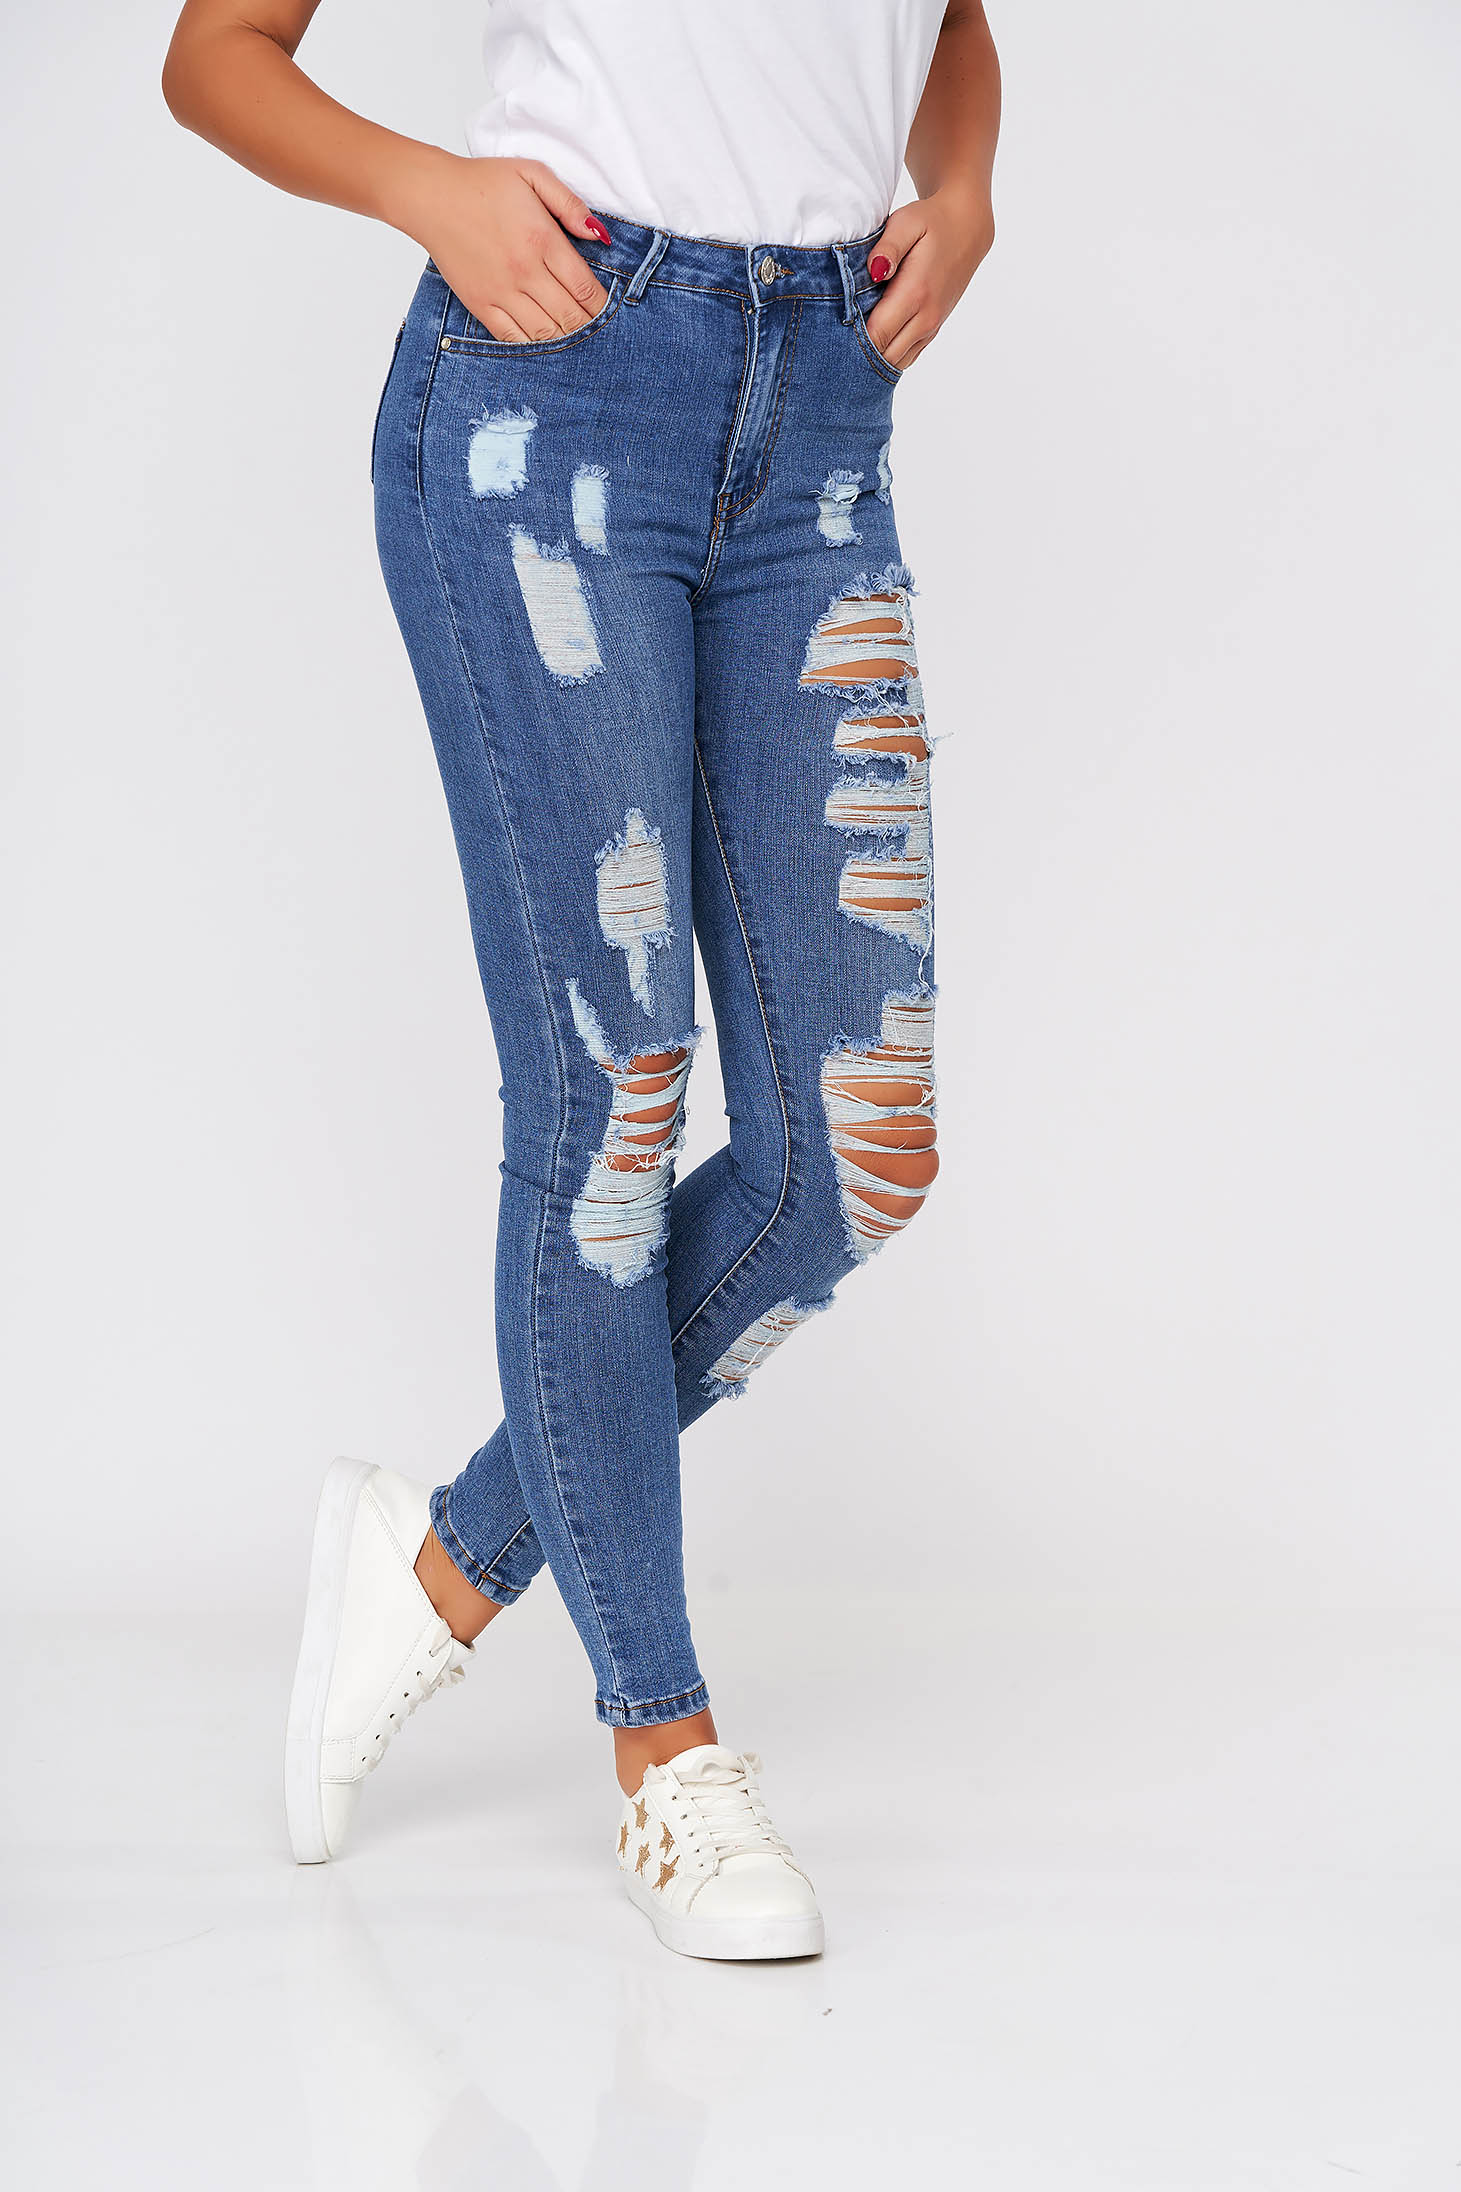 Blue jeans casual skinny jeans high waisted elastic cotton